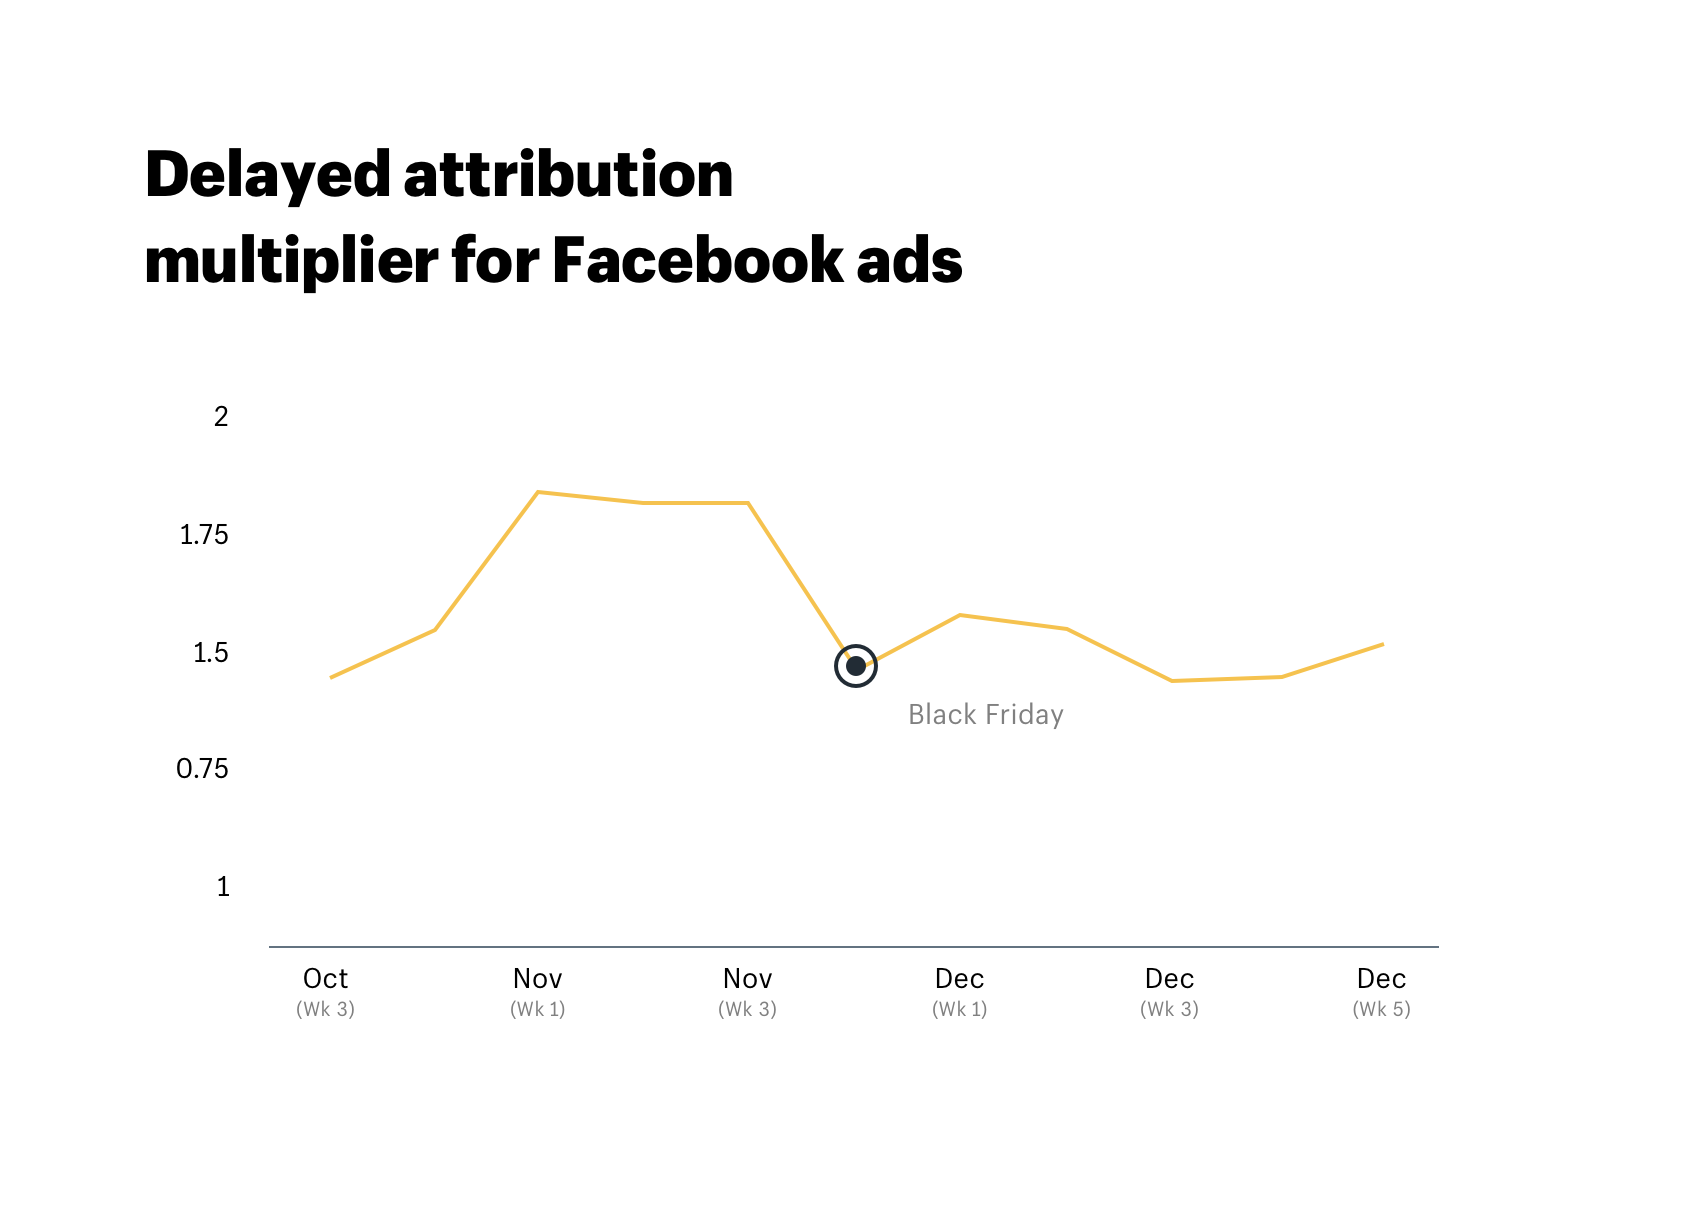 Delayed attribution multiplier for Black Friday Facebook ads